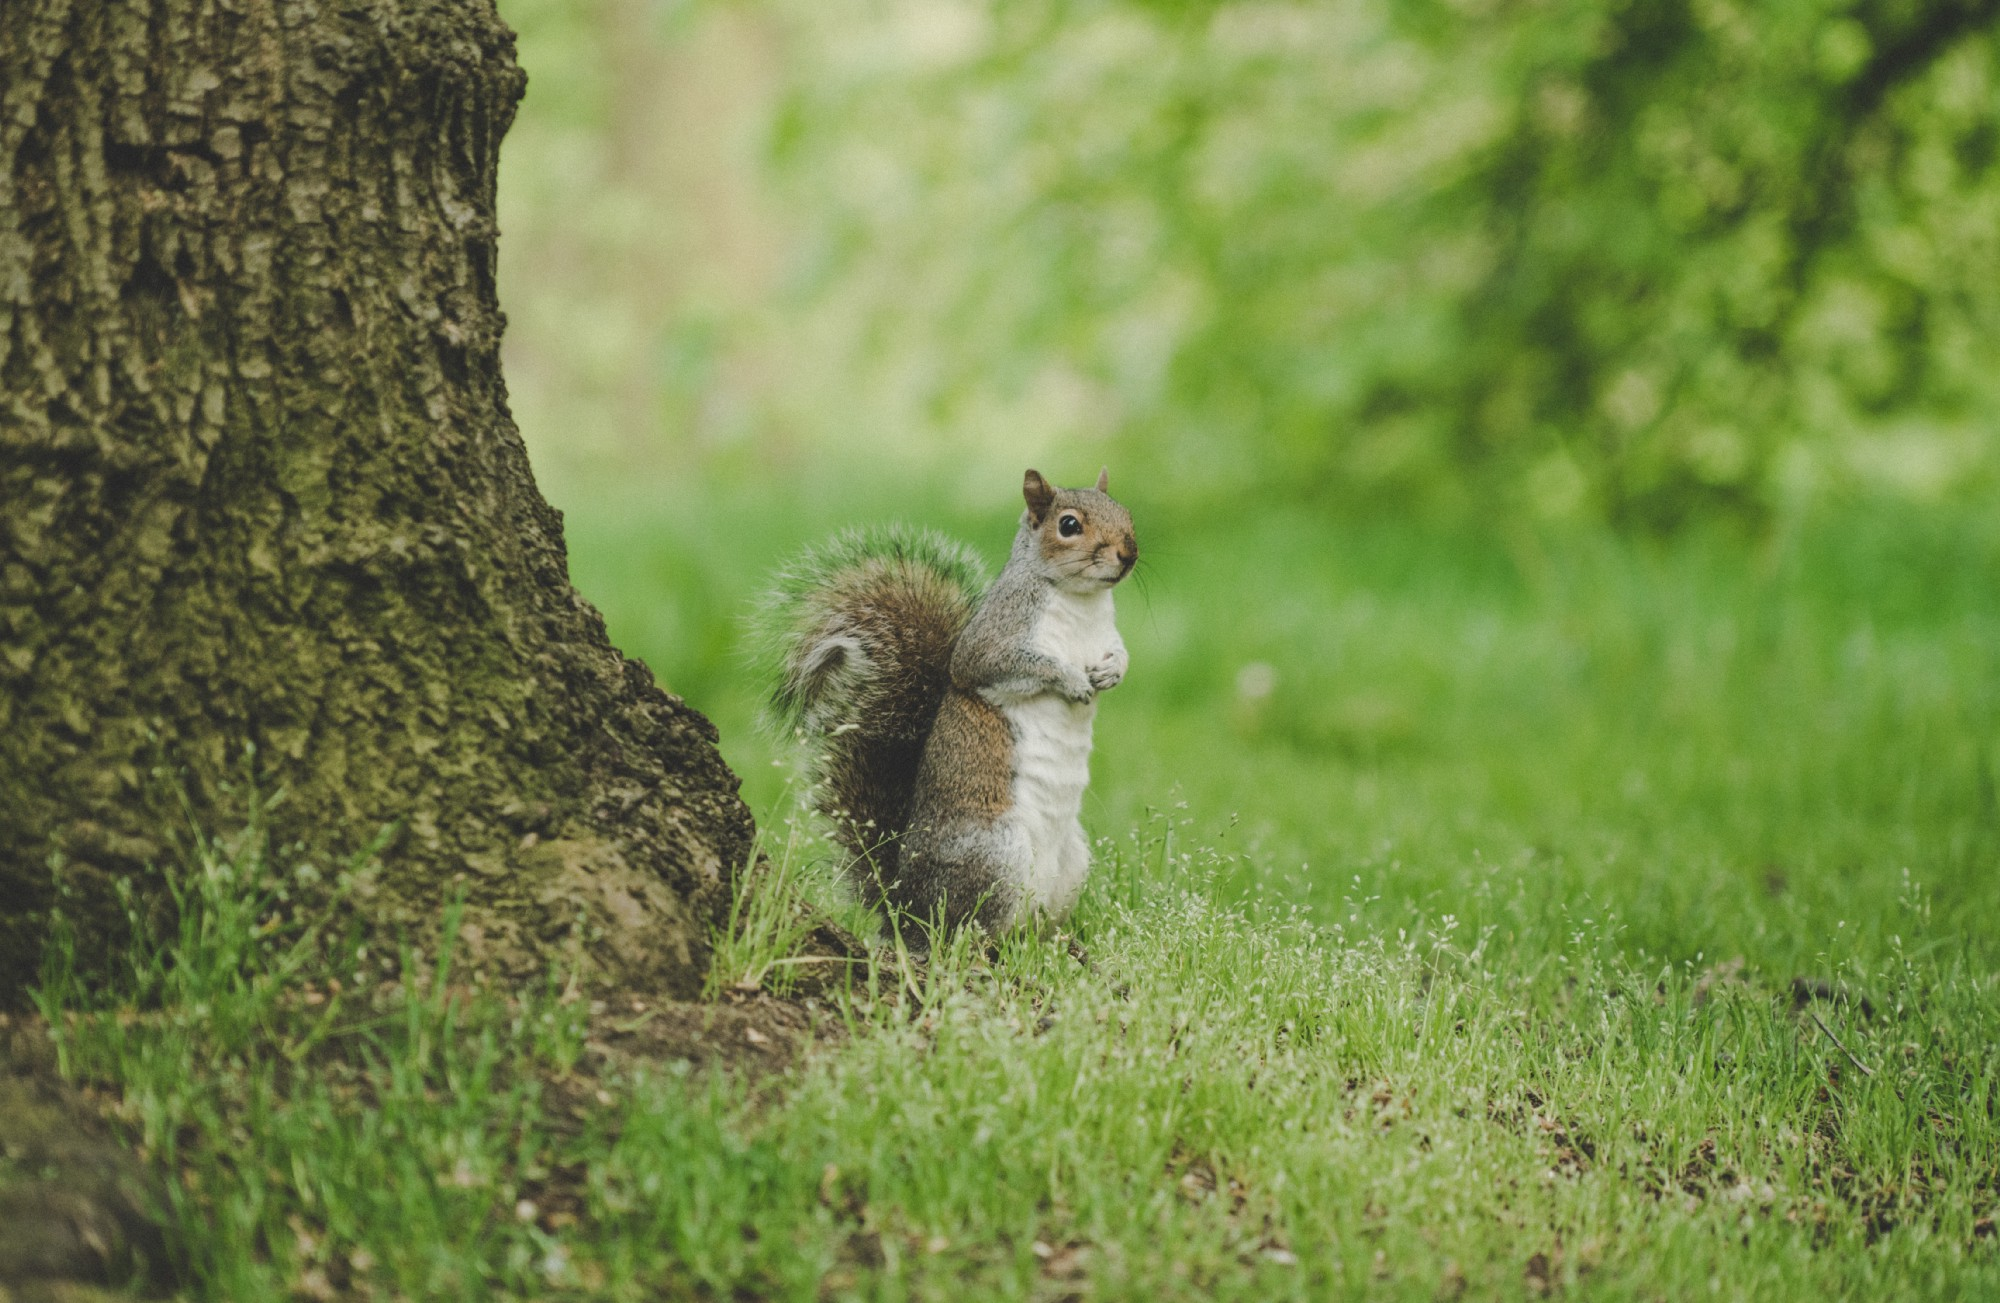 a squirrel is waiting under a tree